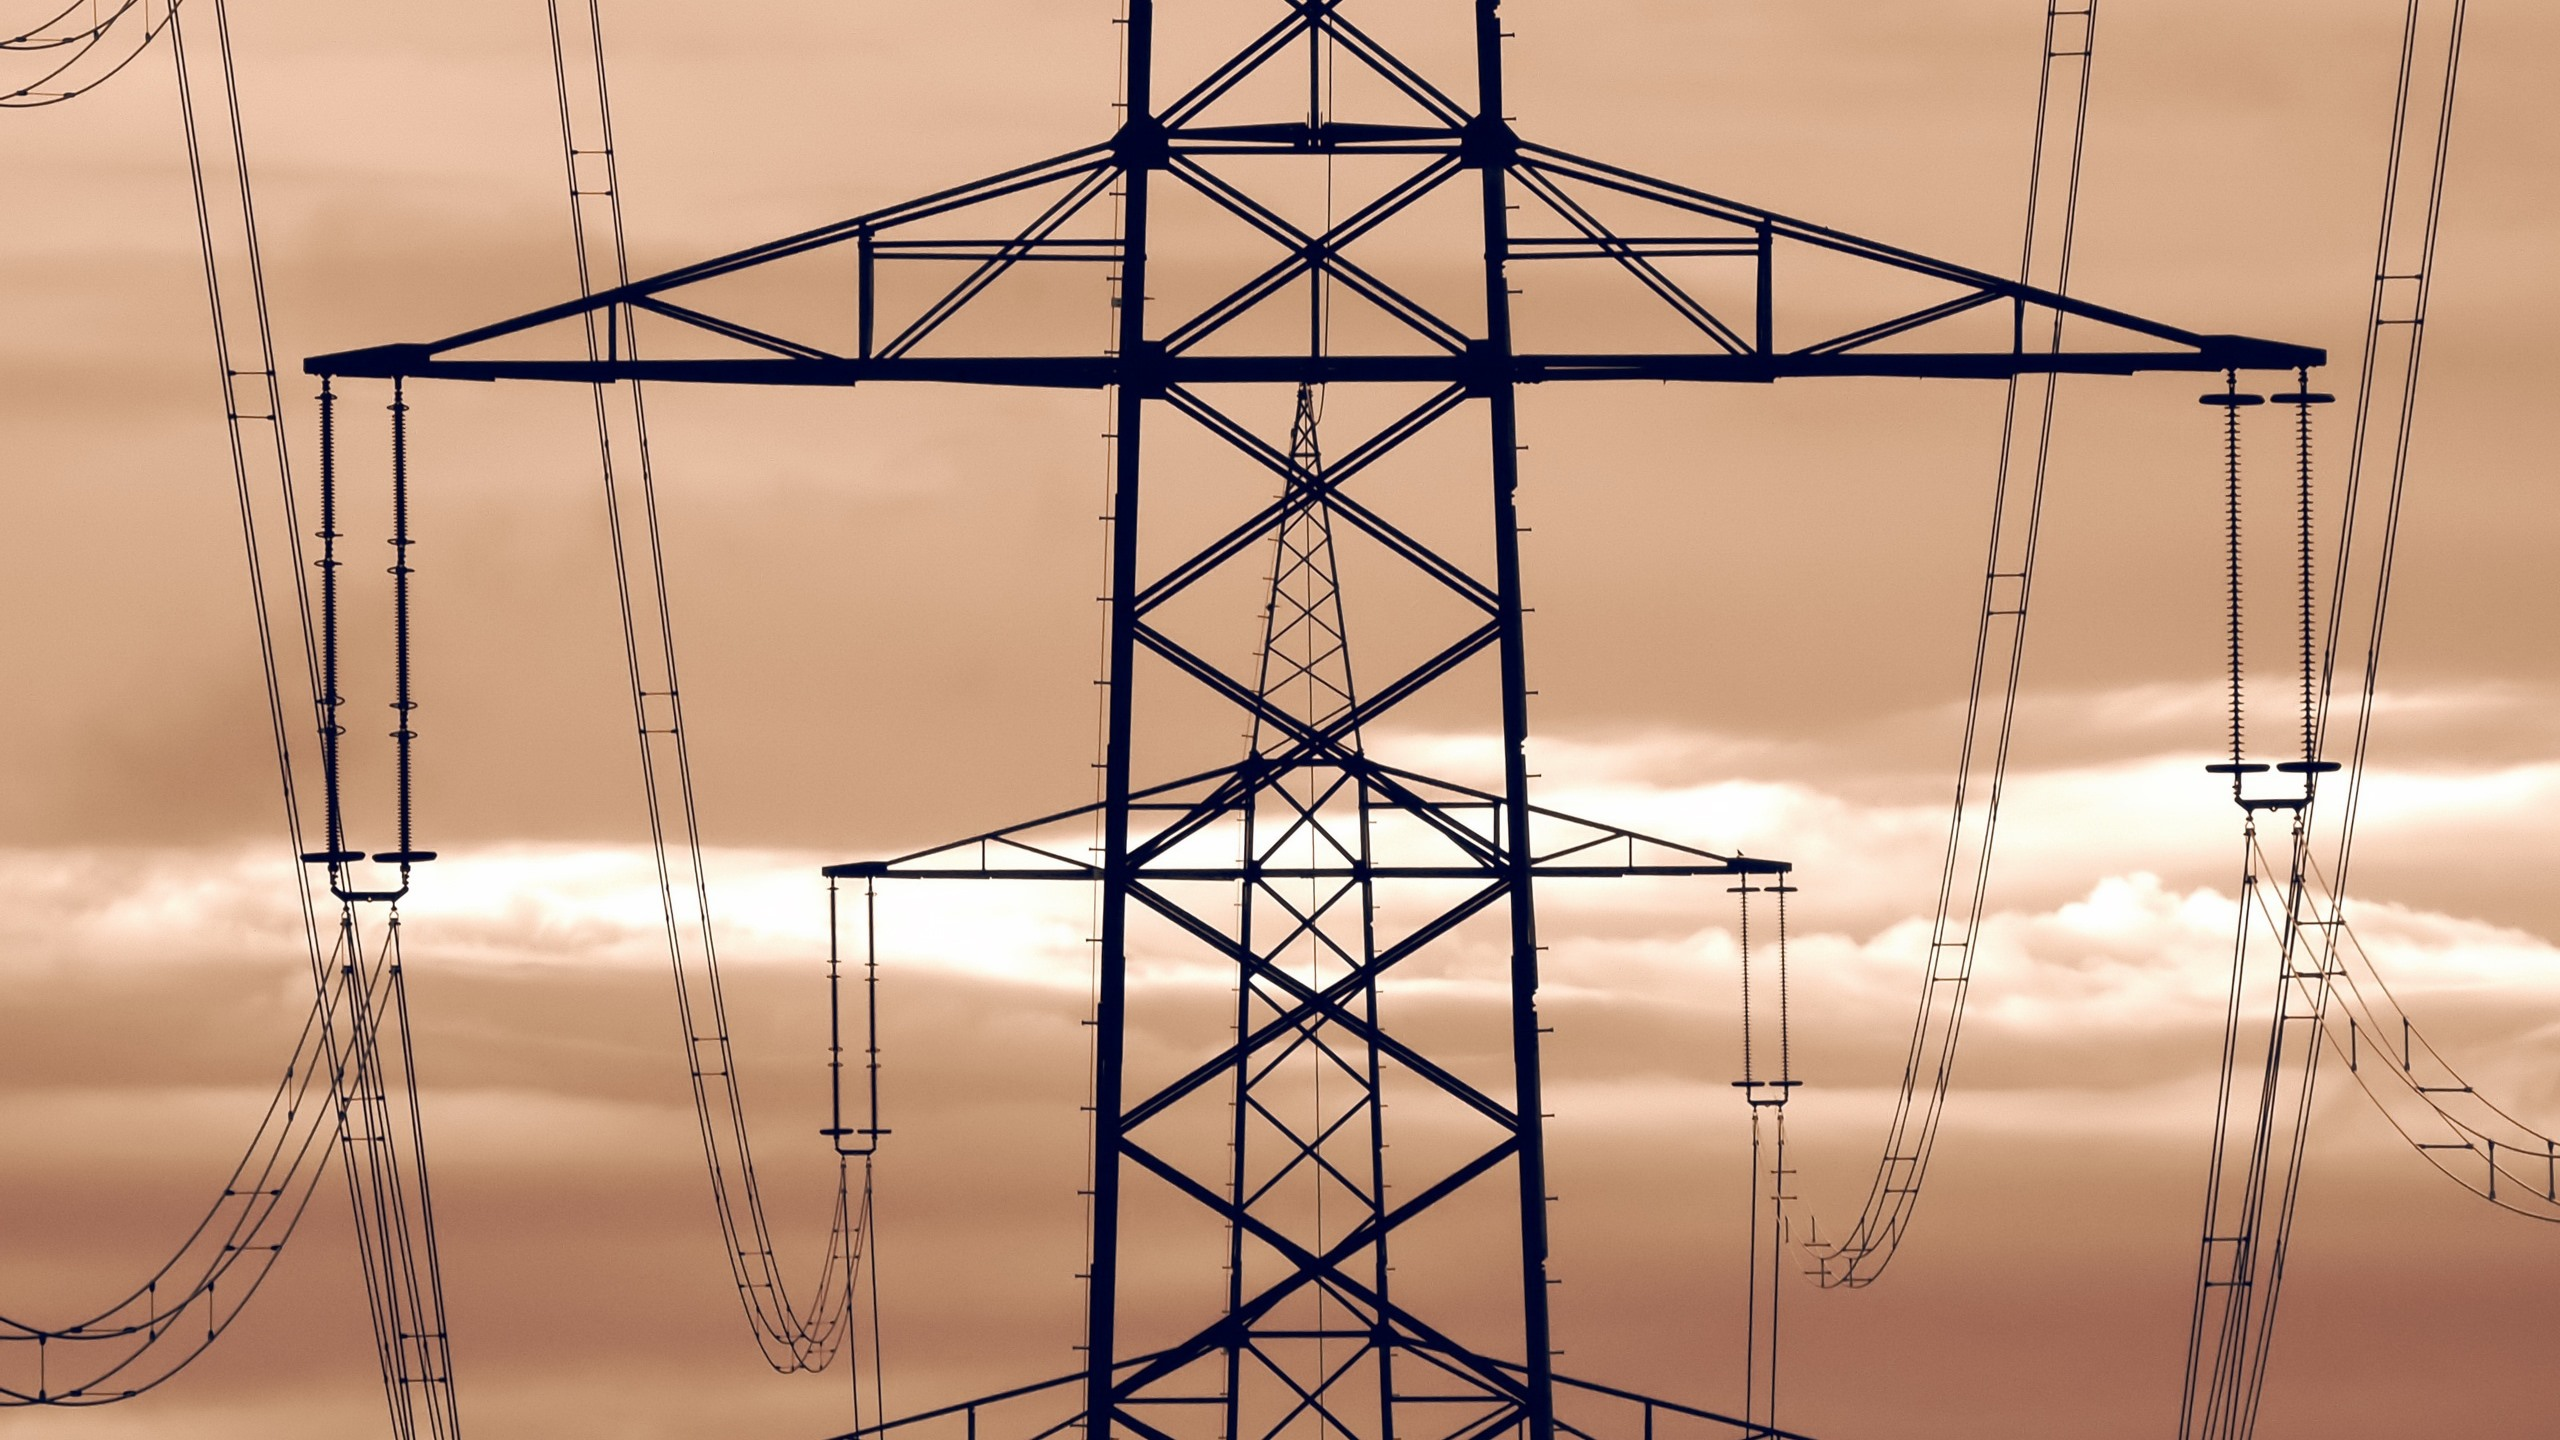 Wallpaper Power Lines Metal Tower 2560x1600 Hd Picture Image